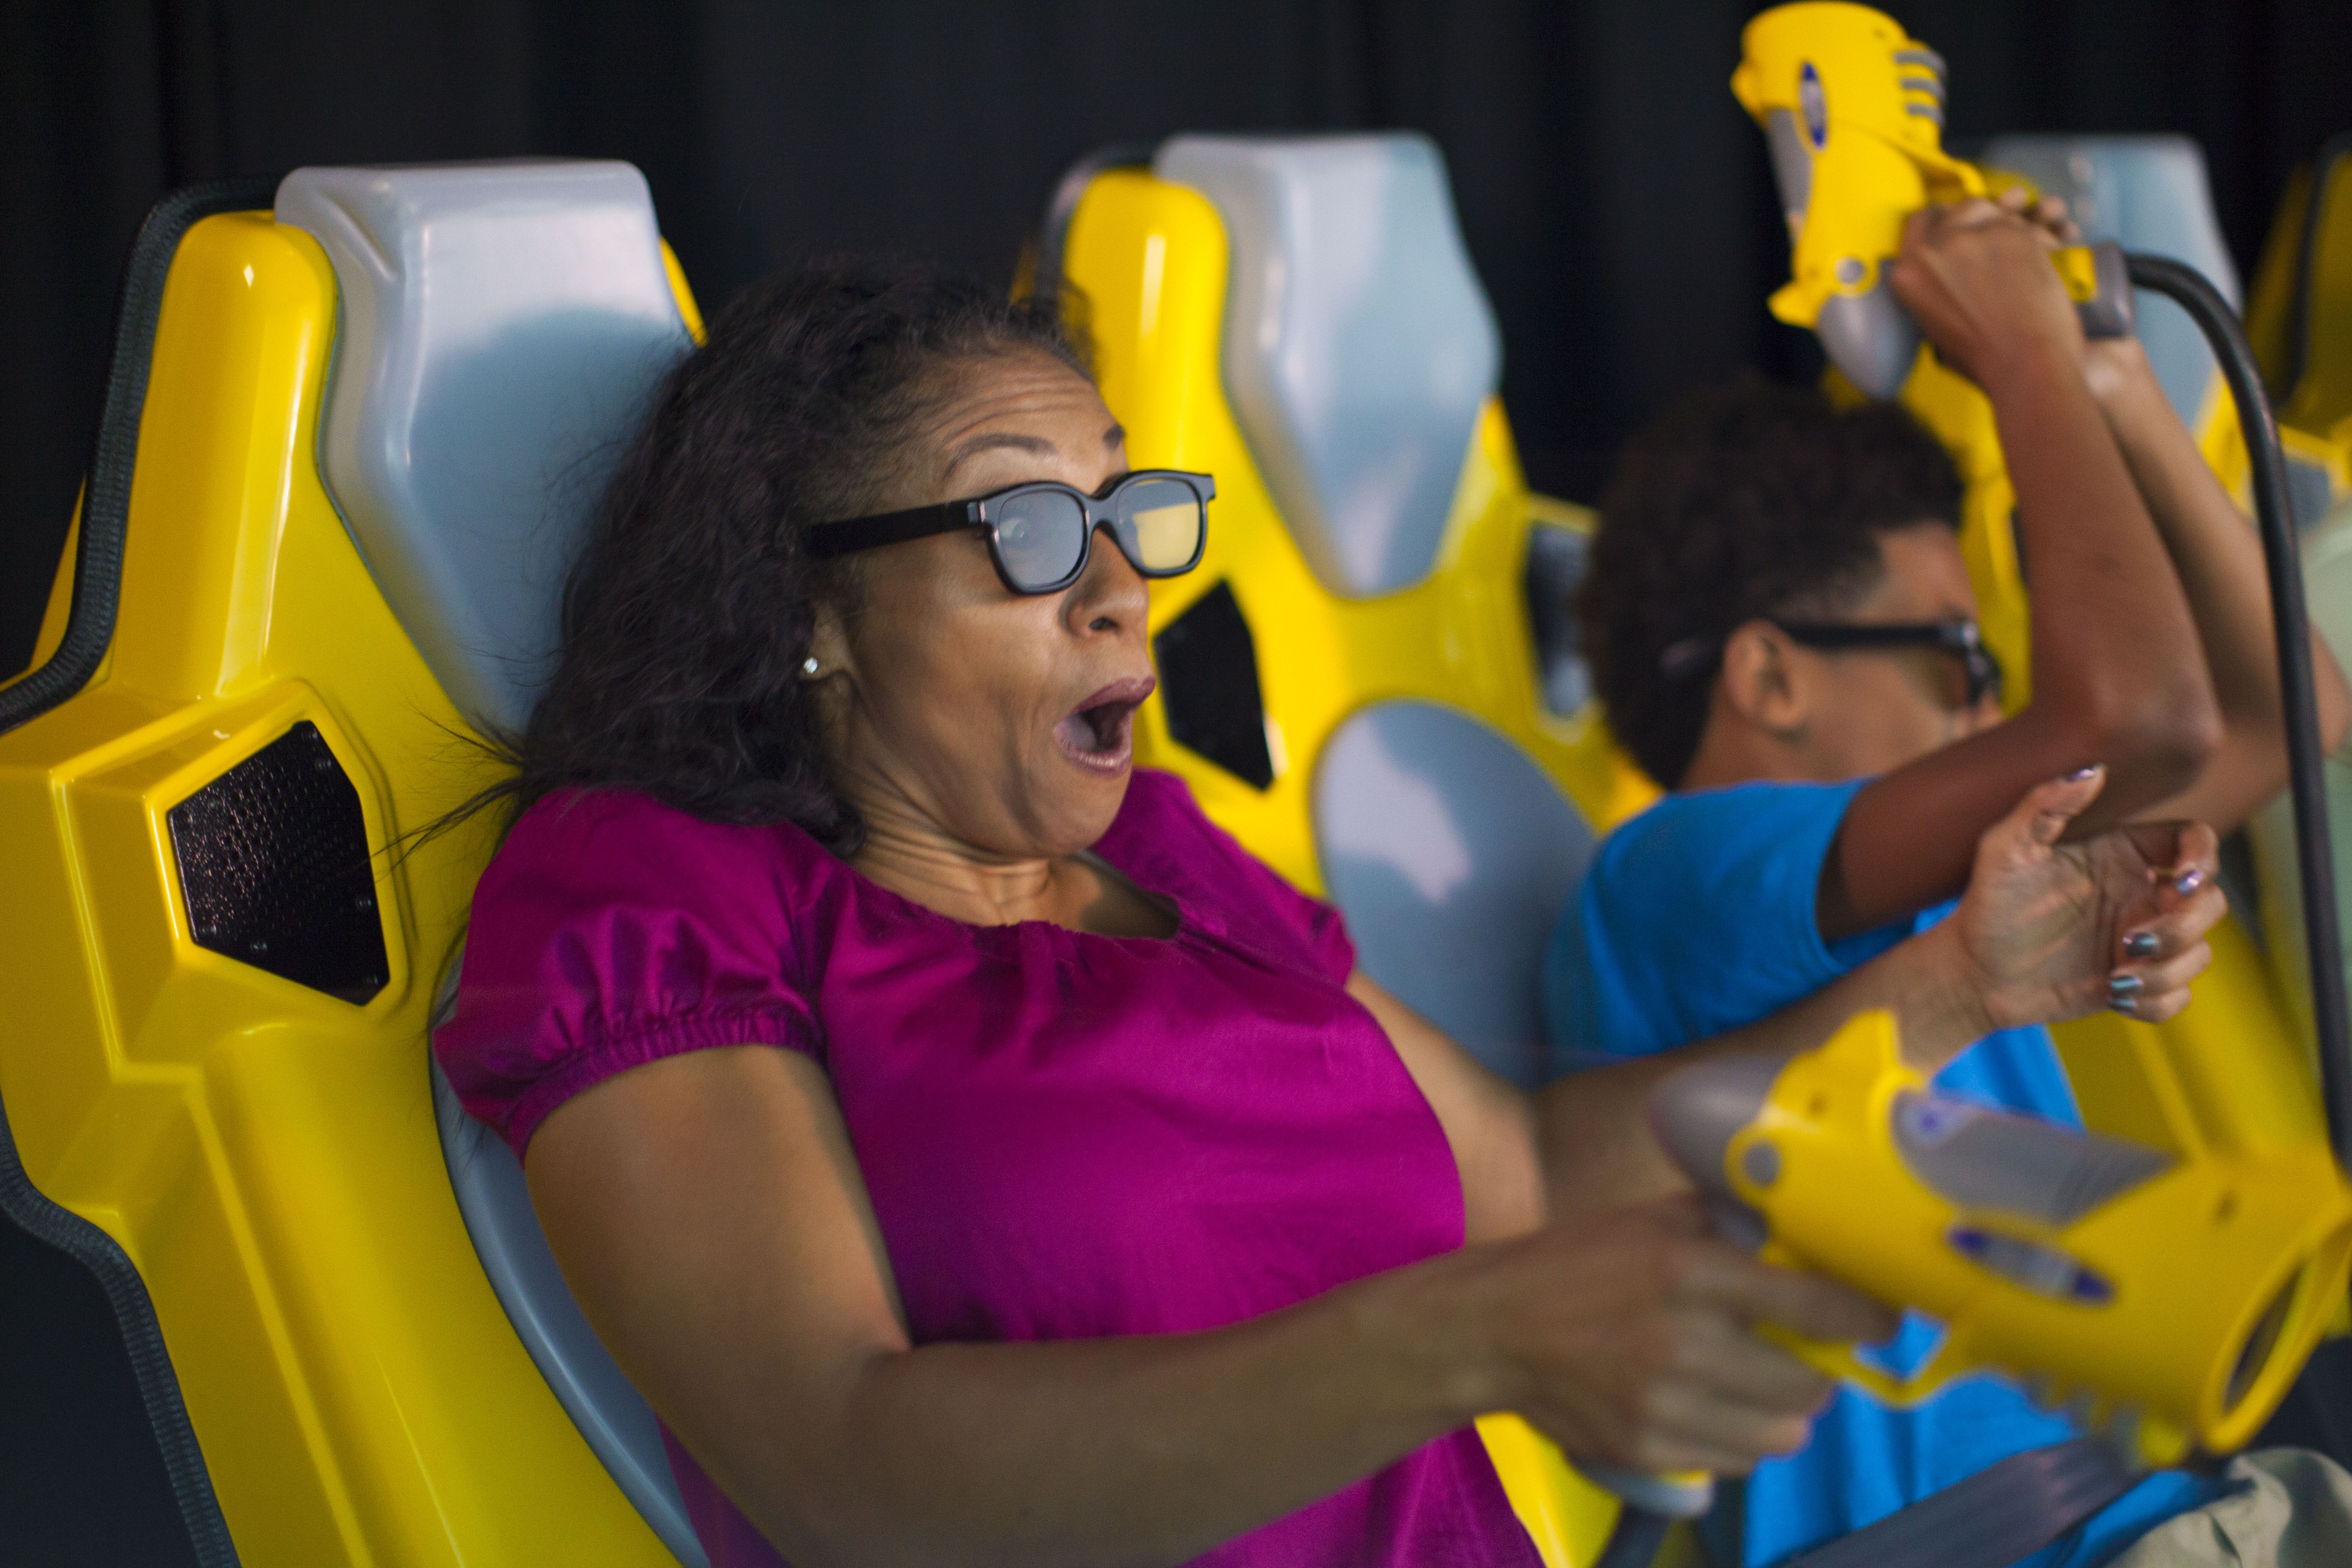 Our 7D Dark Ride Adventure makes you feel like you're right in the